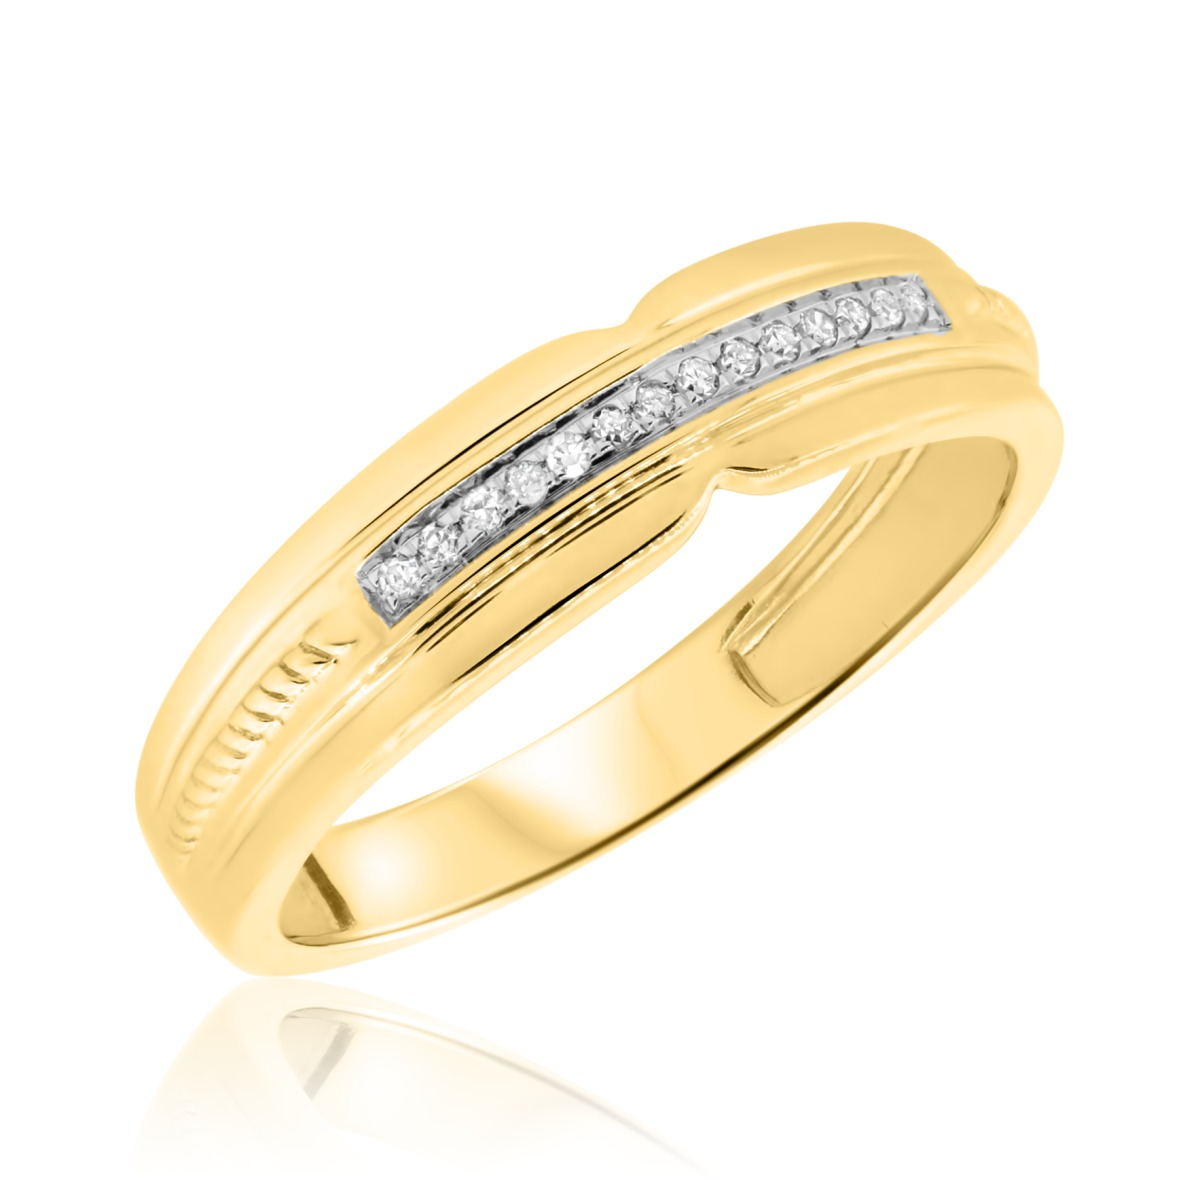 1/20 Carat T.W. Diamond Ladies Wedding Band  10K Yellow Gold